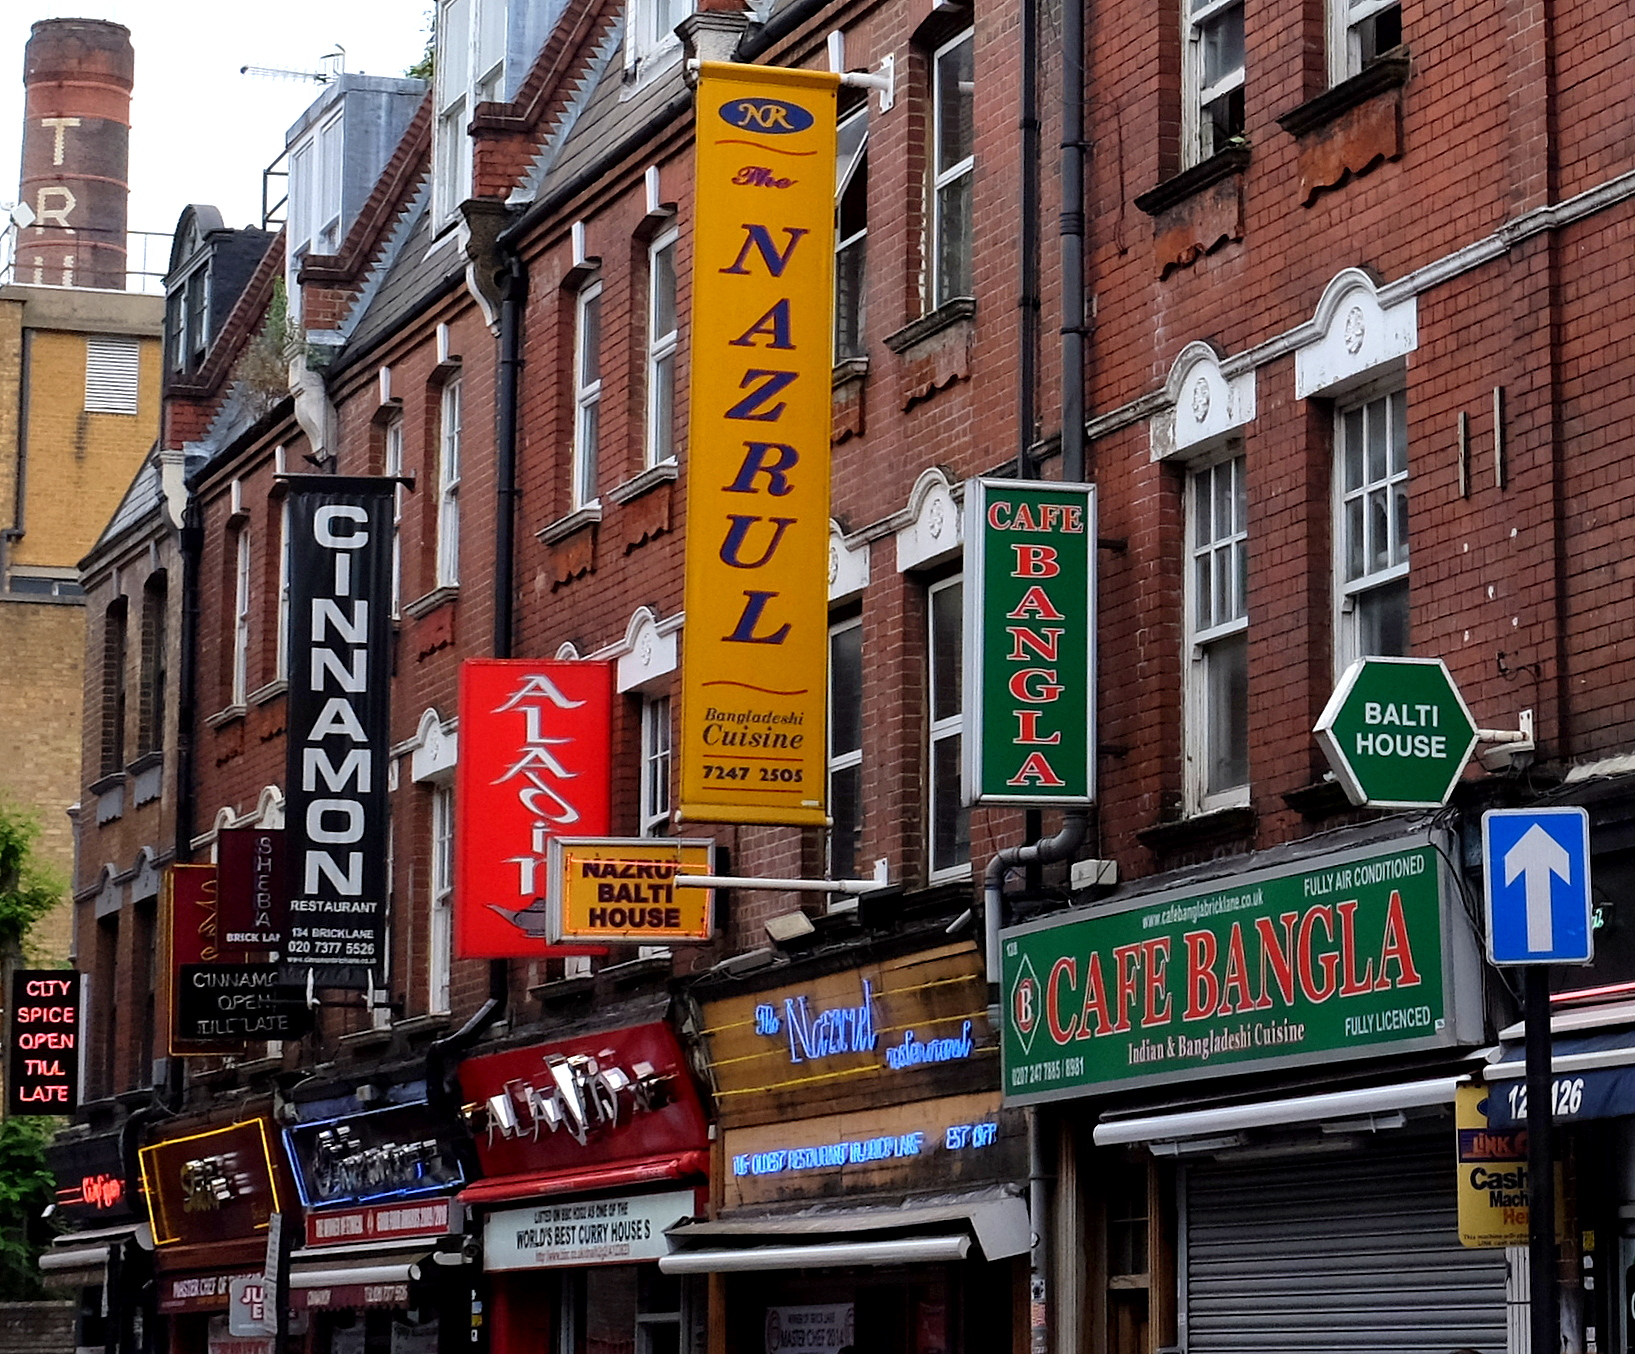 Brick Lane curry houses